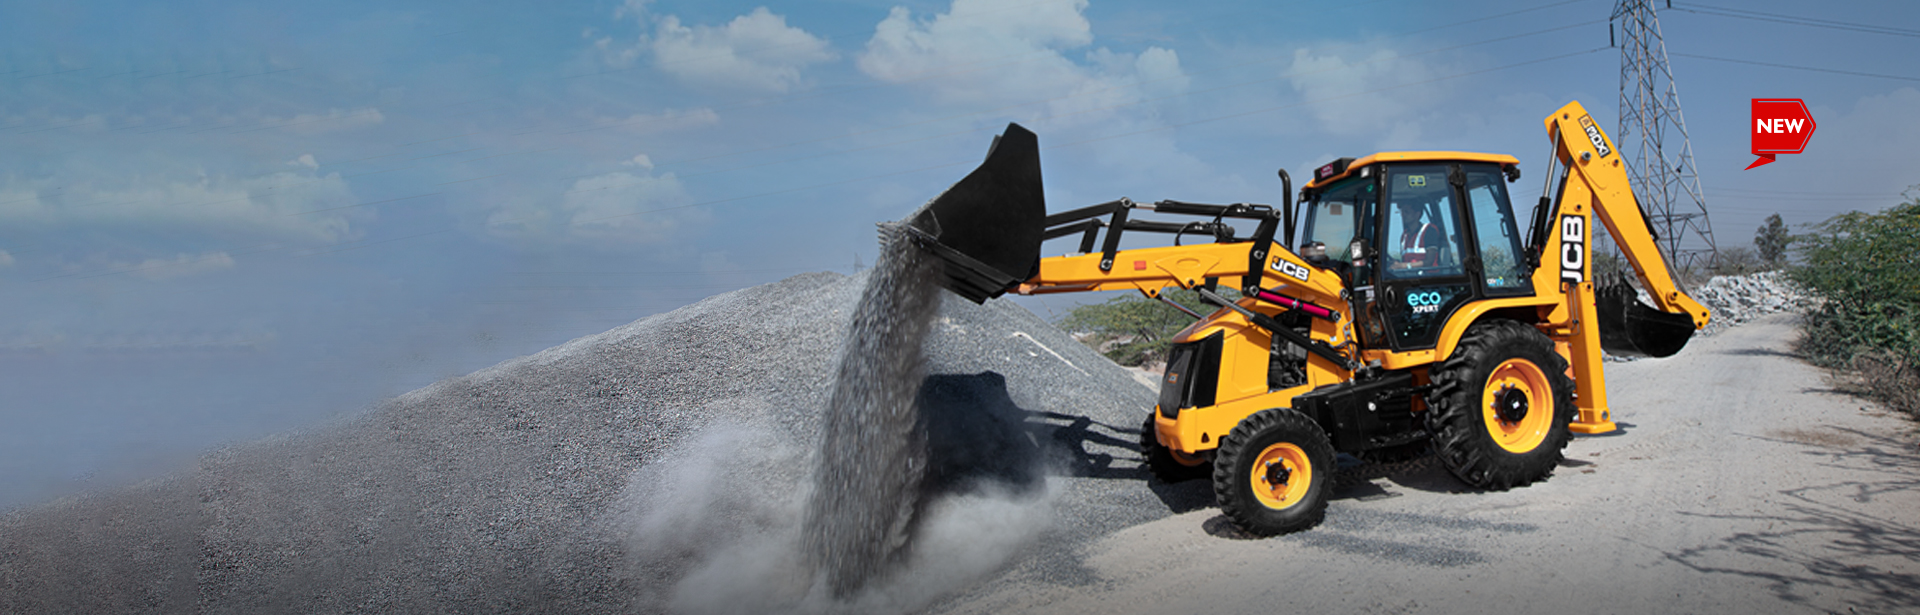 JCB 3DX PLUS Durgapur